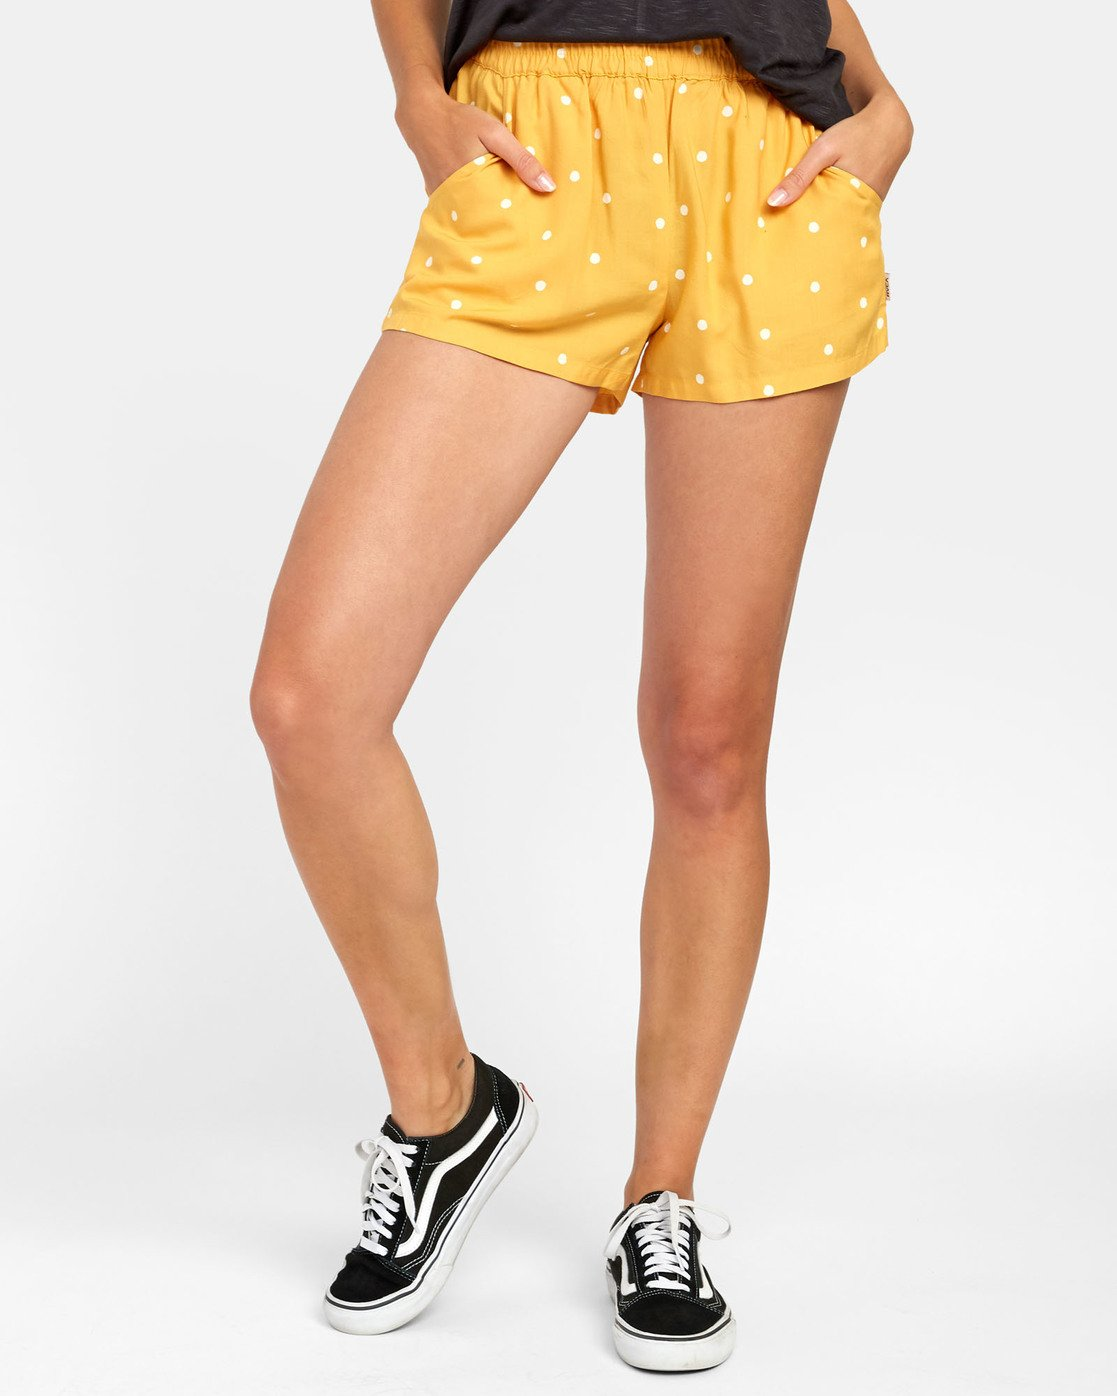 0 Suggest - Dot Print Shorts for Women Yellow S3WKRKRVP0 RVCA